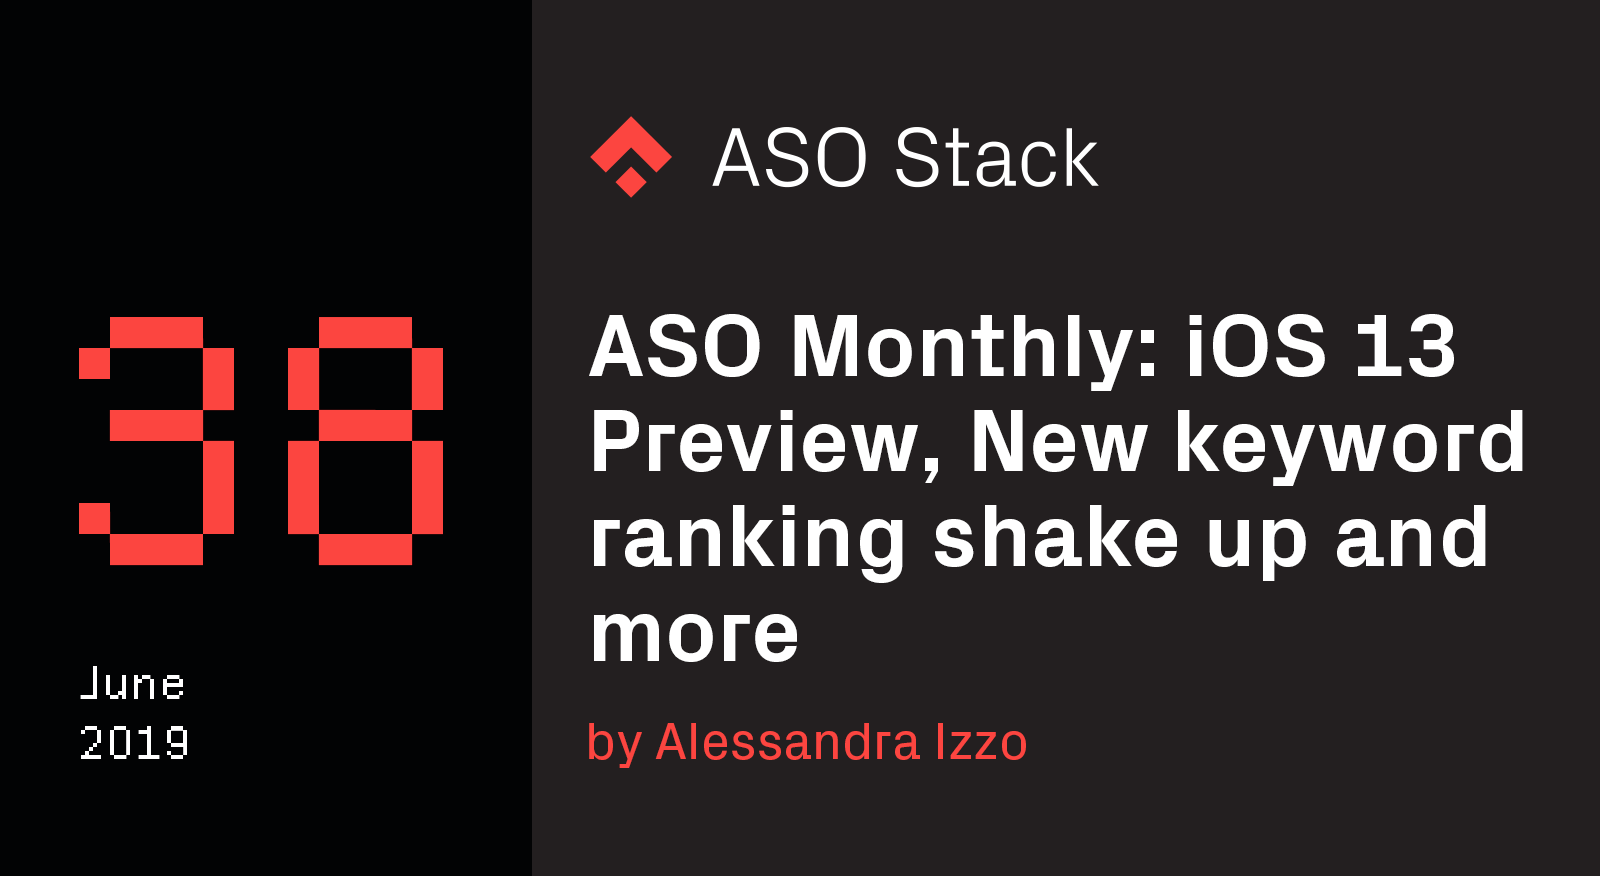 ASO Monthly #38 June 2019: iOS 13 Preview, Localization for